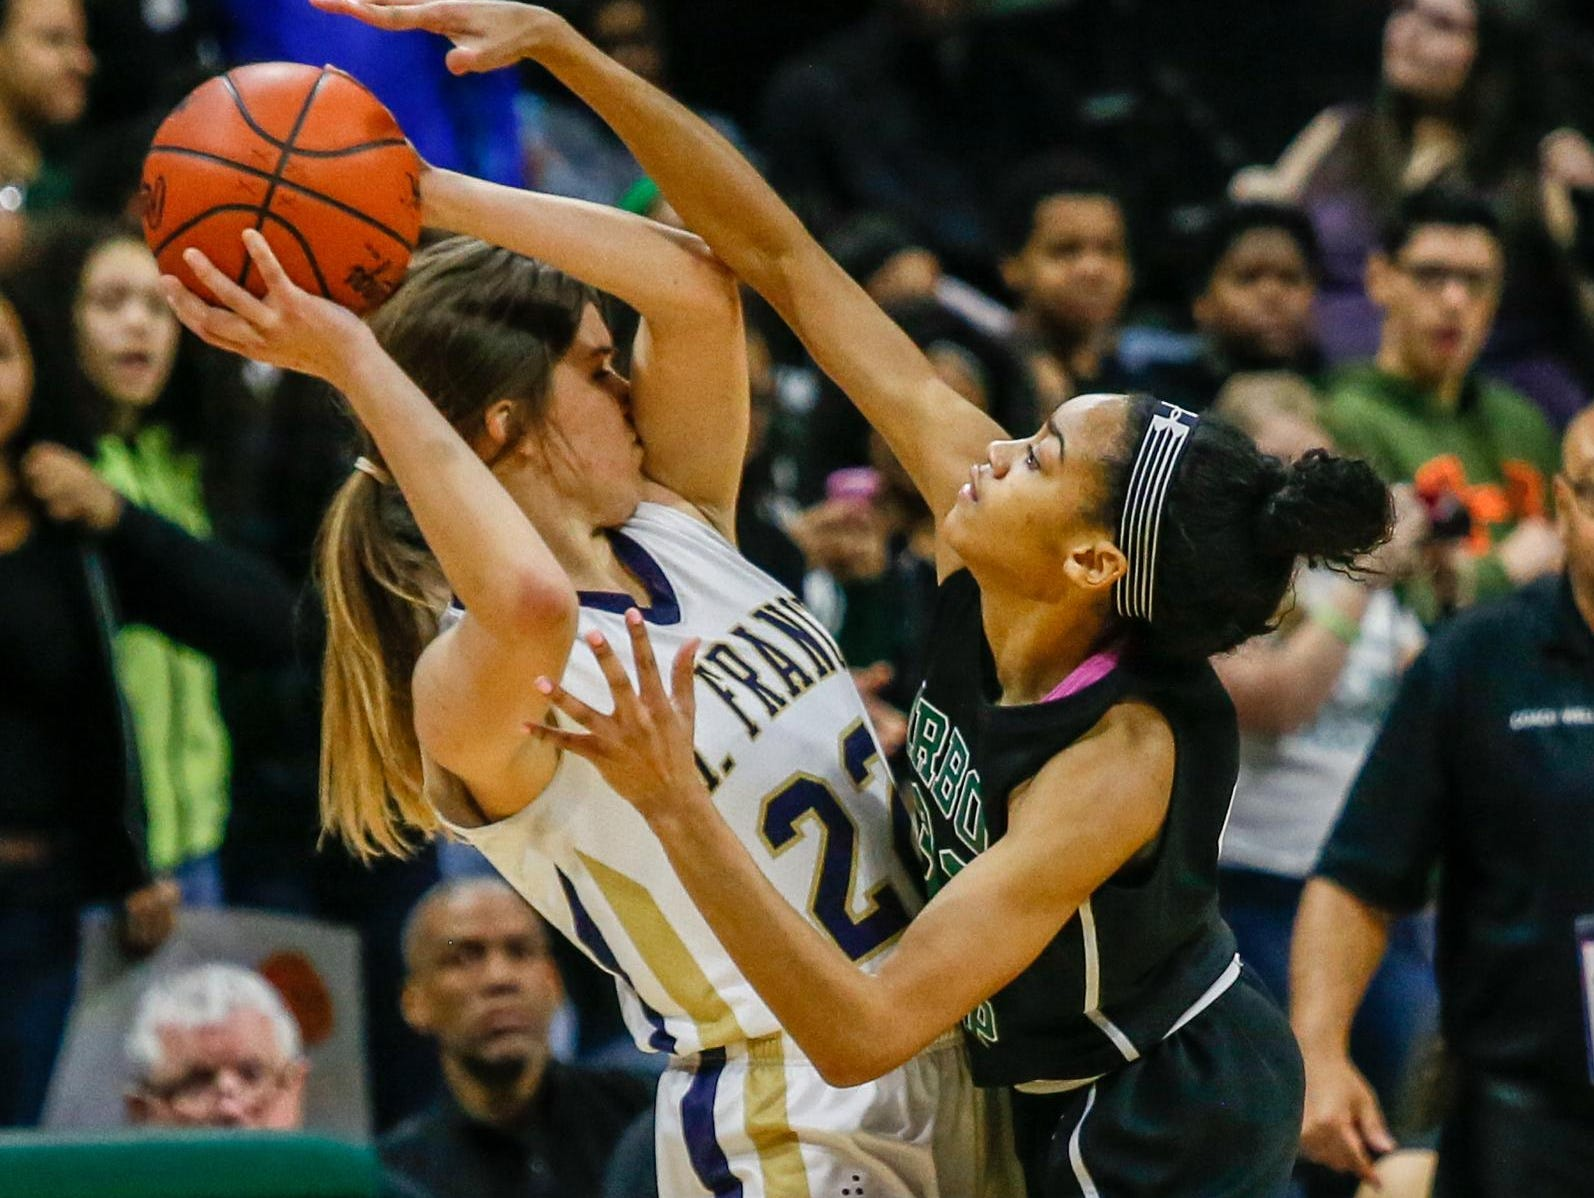 Traverse City St. Francis' Annie Lyman tries to pass the basketball while being guarded by Ypsilanti Arbor Prep's Adrienne Anderson.